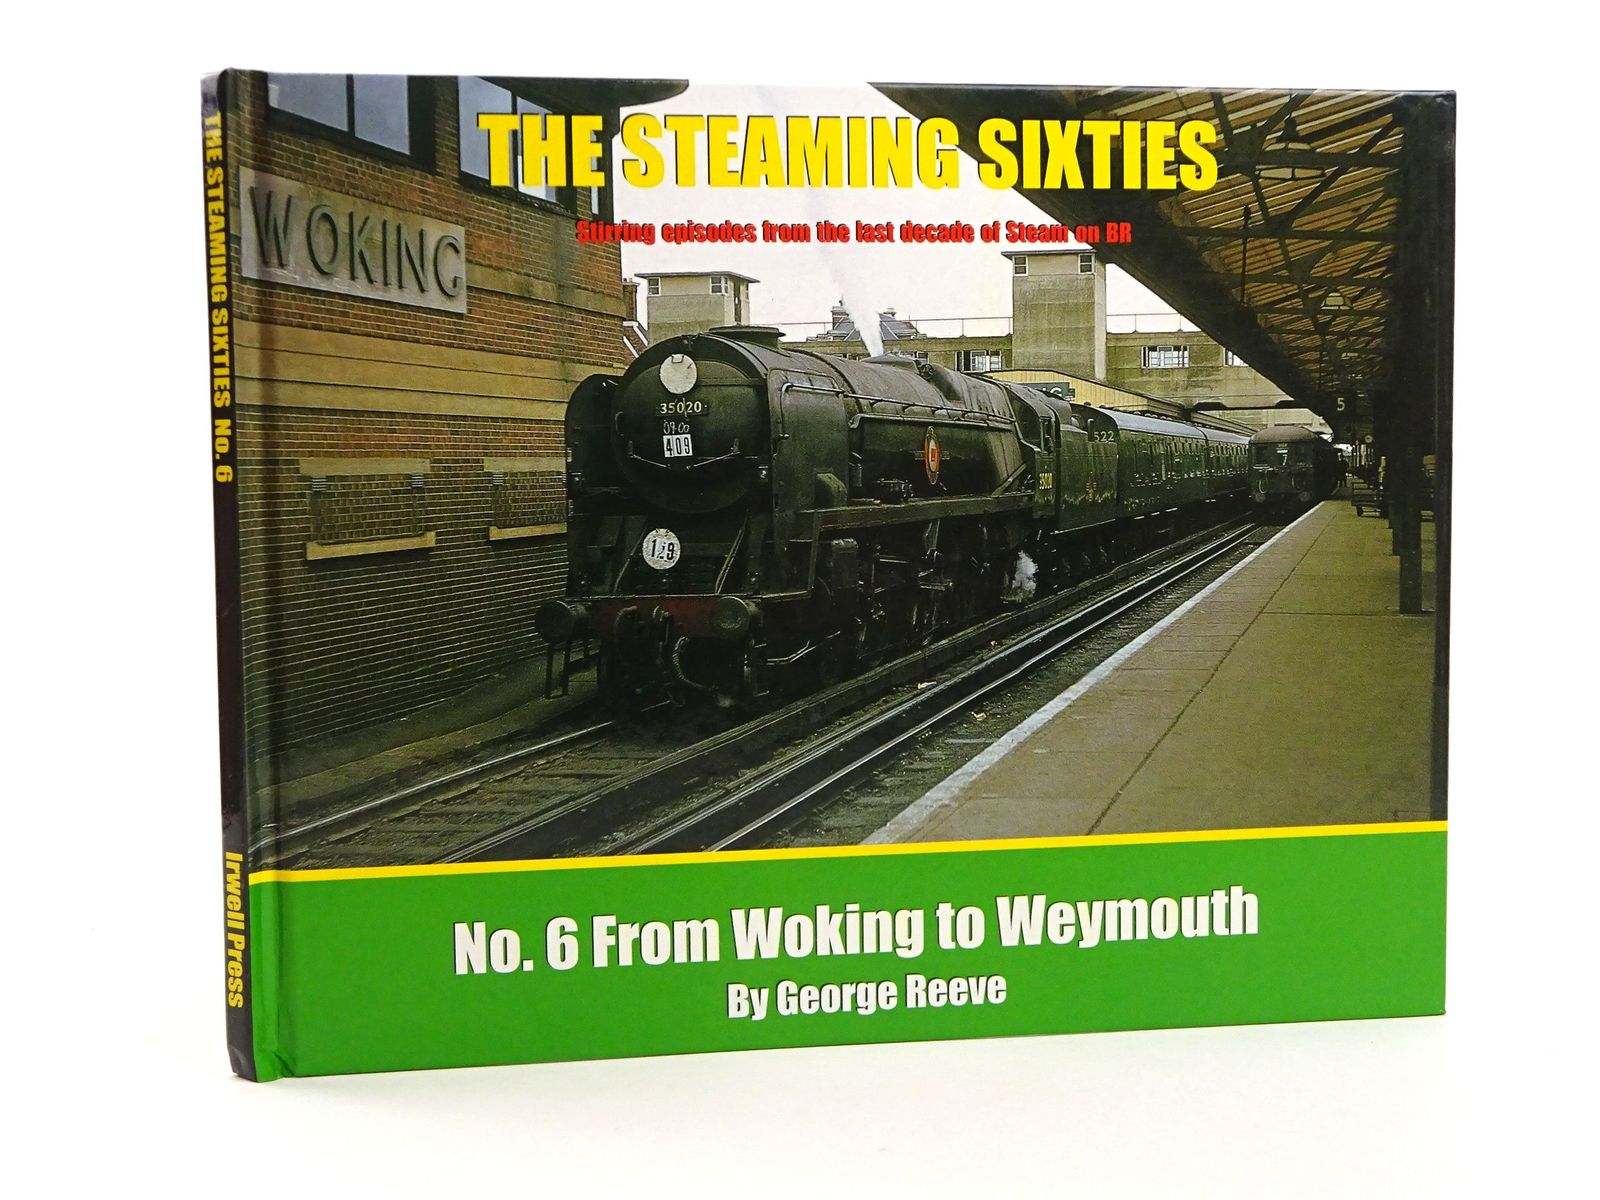 Photo of THE STEAMING SIXTIES: STIRRING EPISODES FROM THE LAST DECADE OF STEAM ON BR 6. FROM WOKING TO WEYMOUTH written by Reeve, George published by Irwell Press (STOCK CODE: 1818147)  for sale by Stella & Rose's Books